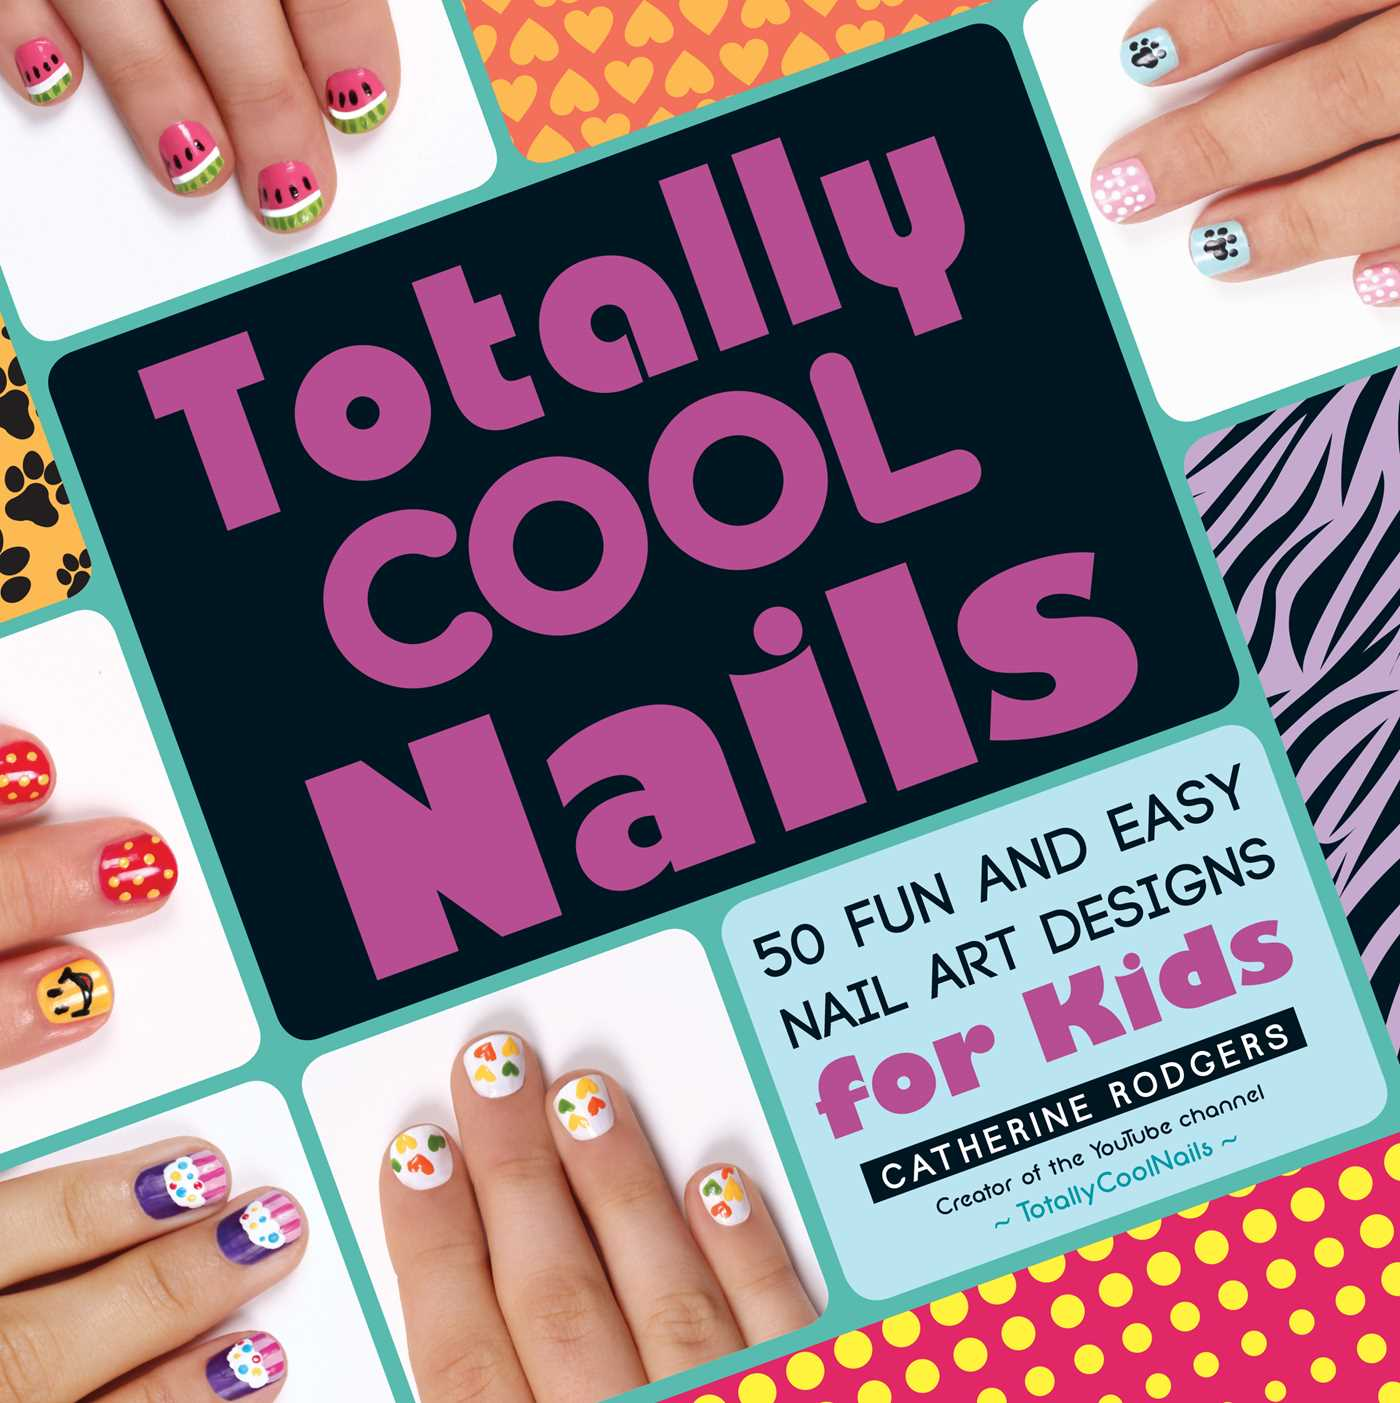 Cool Book Cover Uk ~ Totally cool nails book by catherine rodgers official